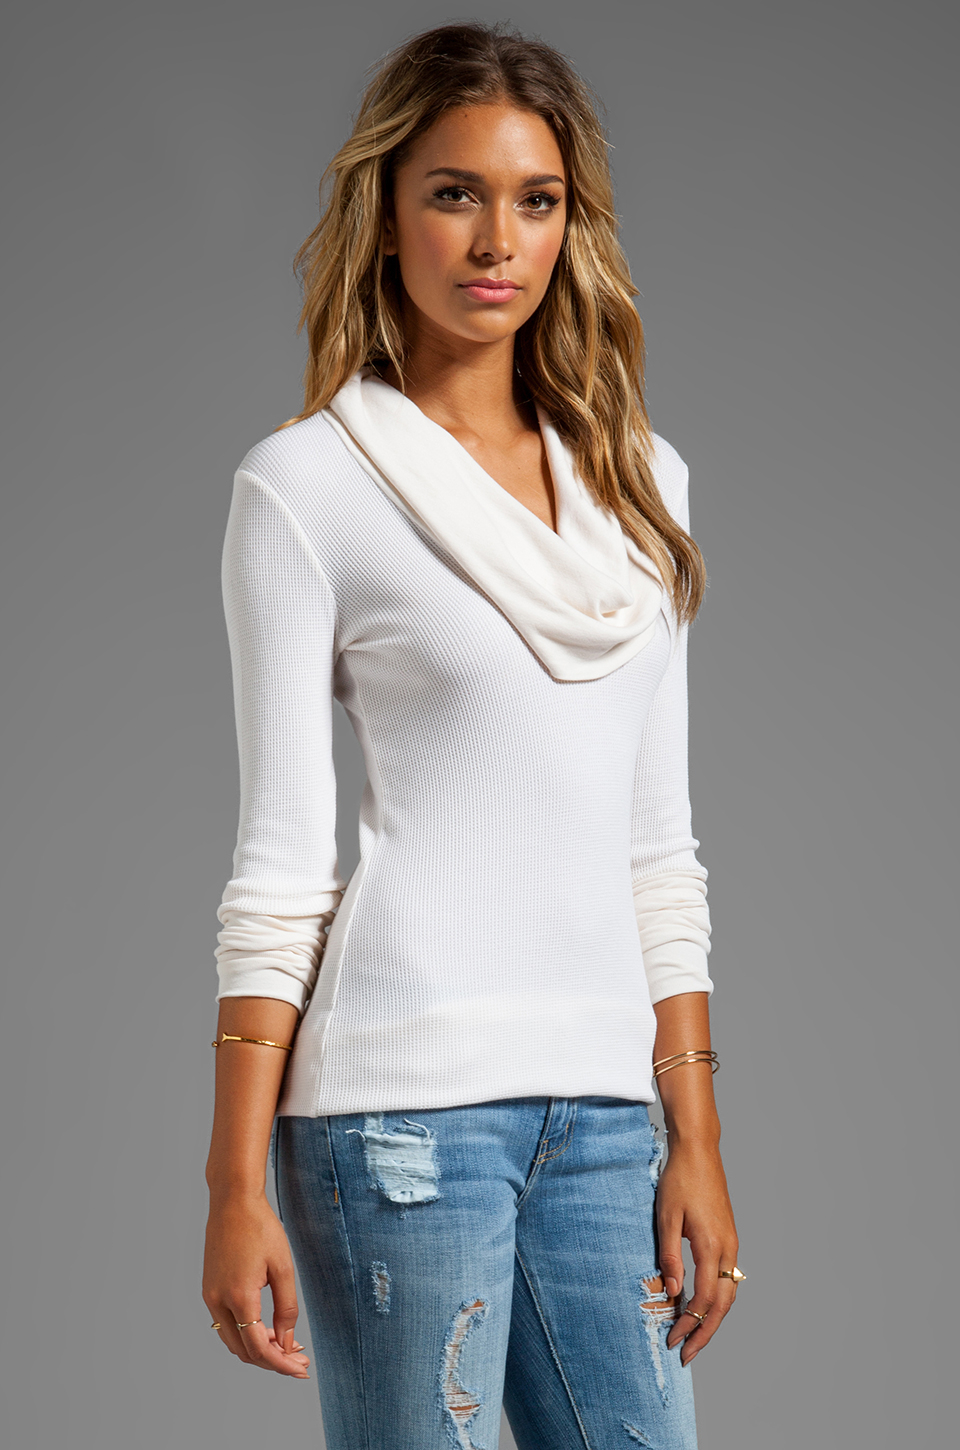 8c6ca046d9234 Lyst - Splendid Thermal Long Sleeve Cowl Neck in Cream in White